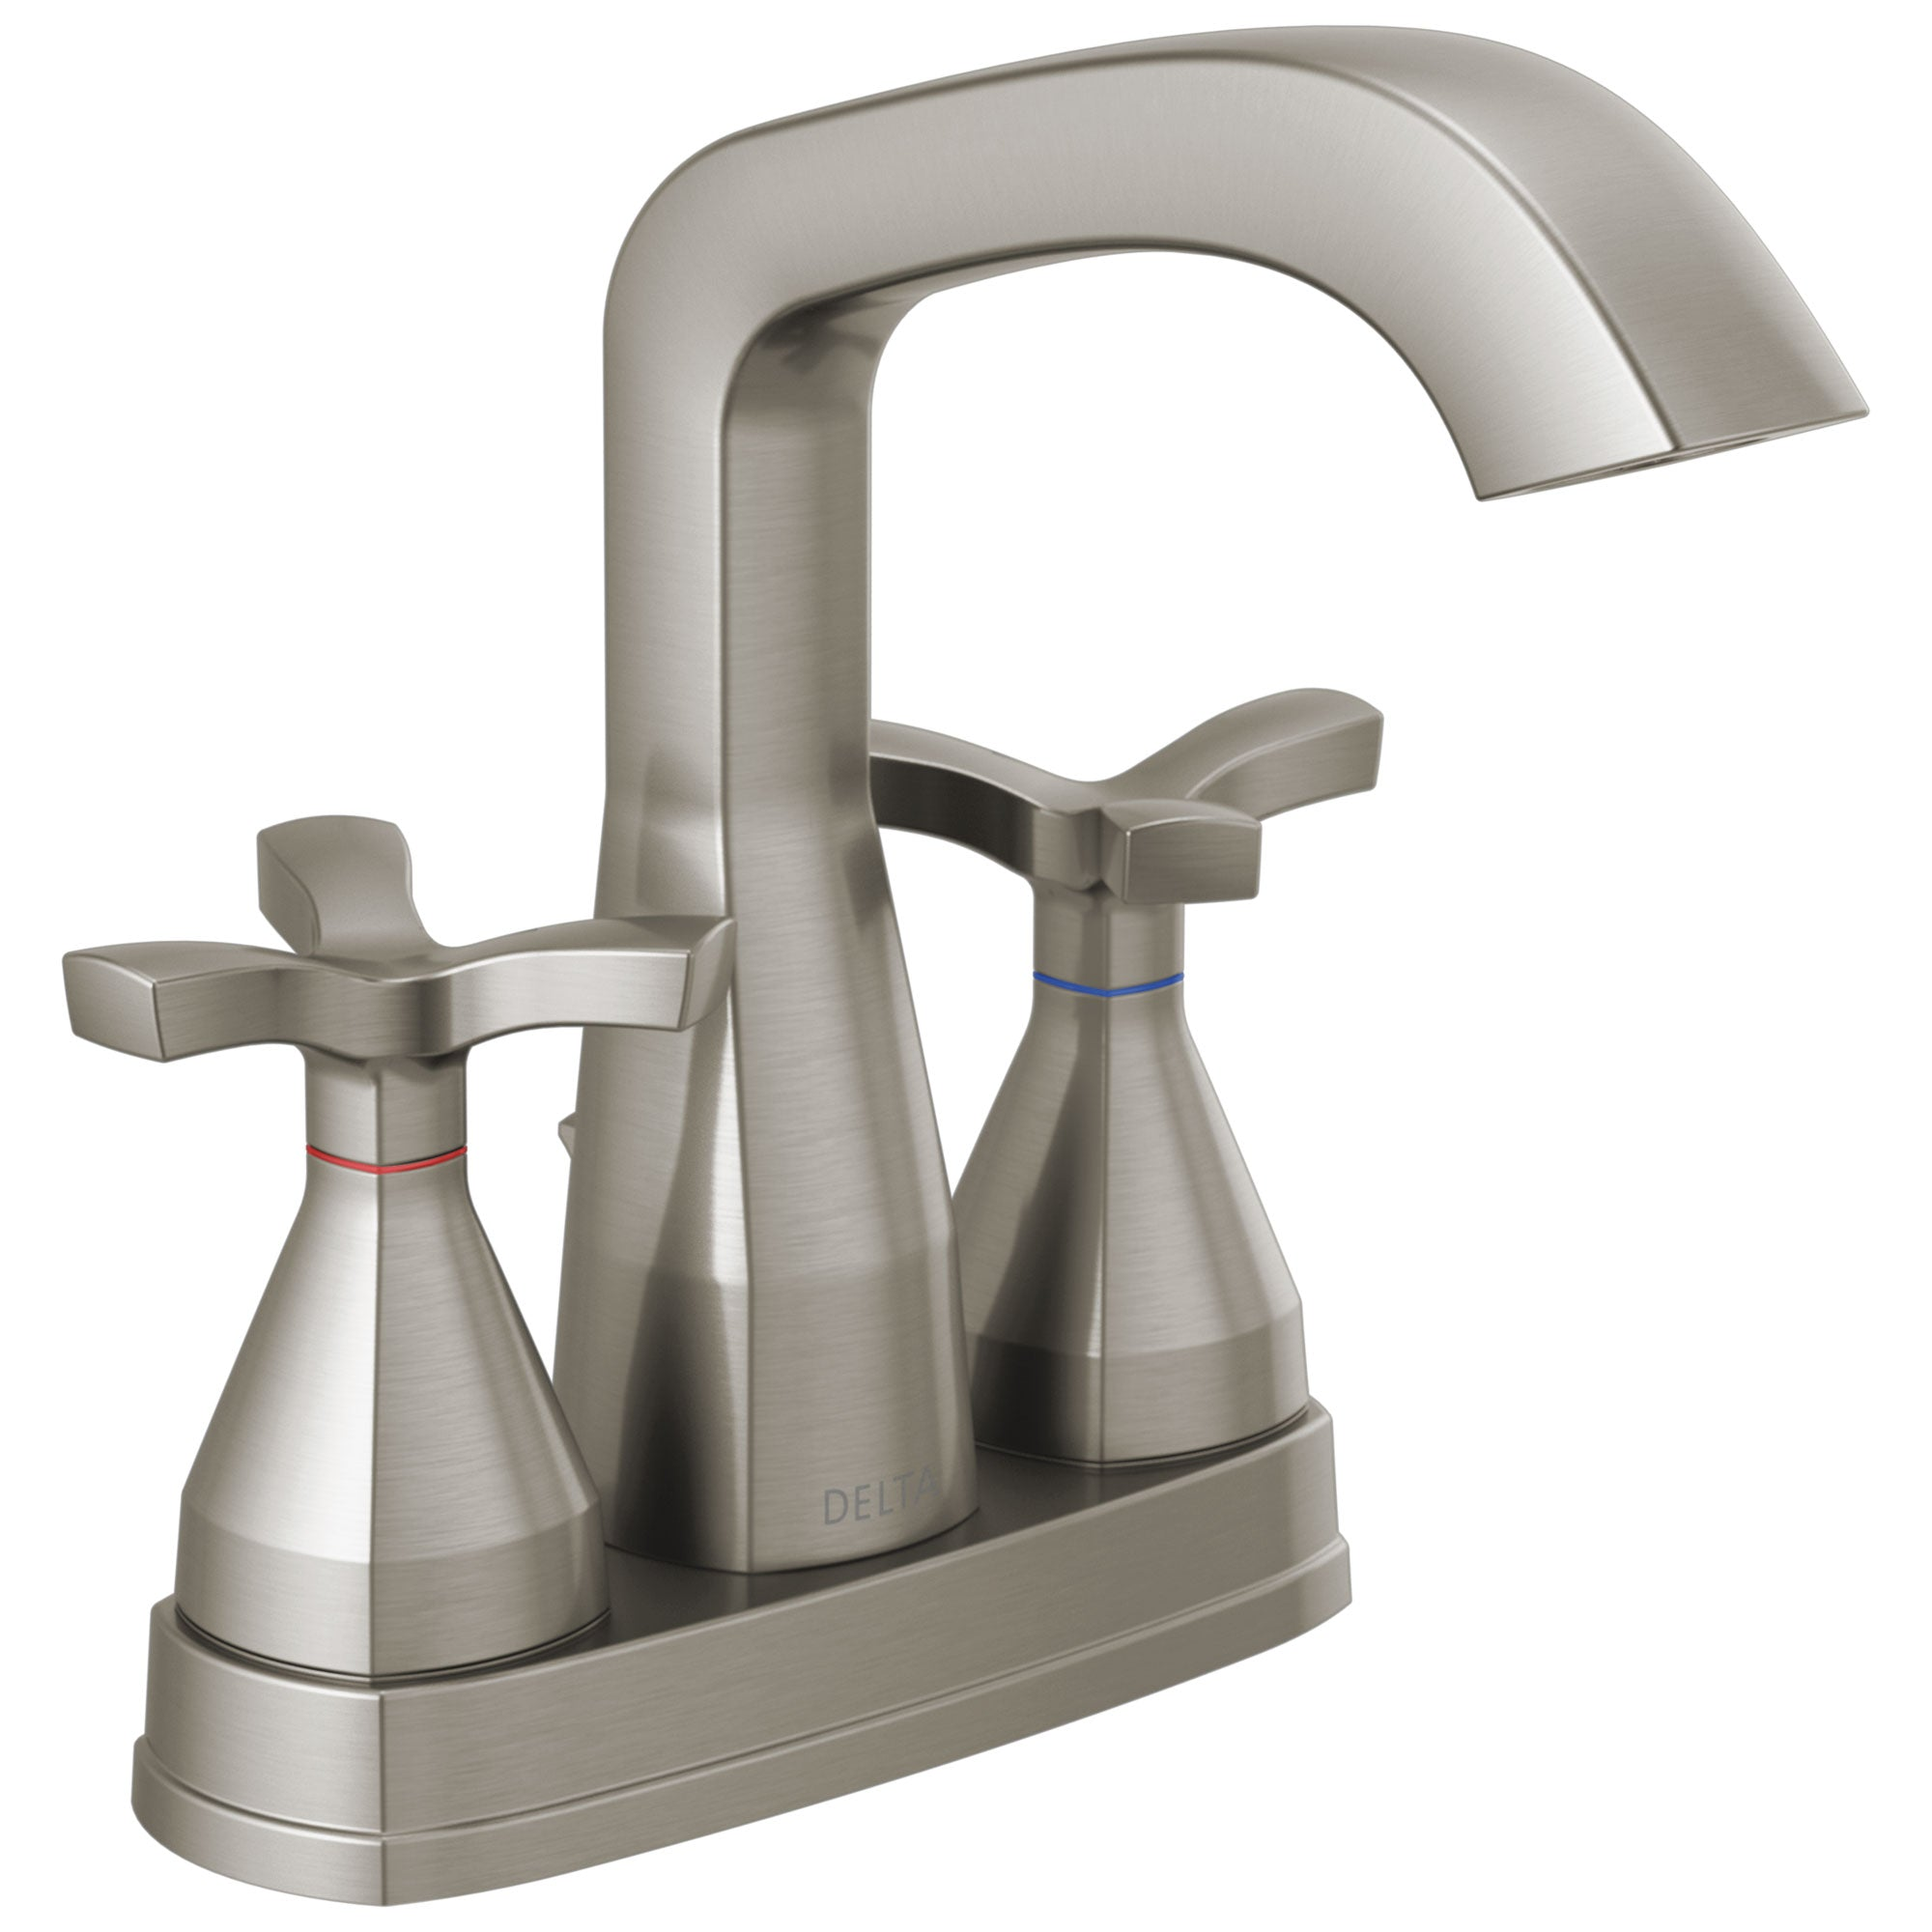 Delta Stryke Stainless Steel Finish Centerset Bathroom Faucet with Matching Drain and Cross Handles D257766SSMPUDST